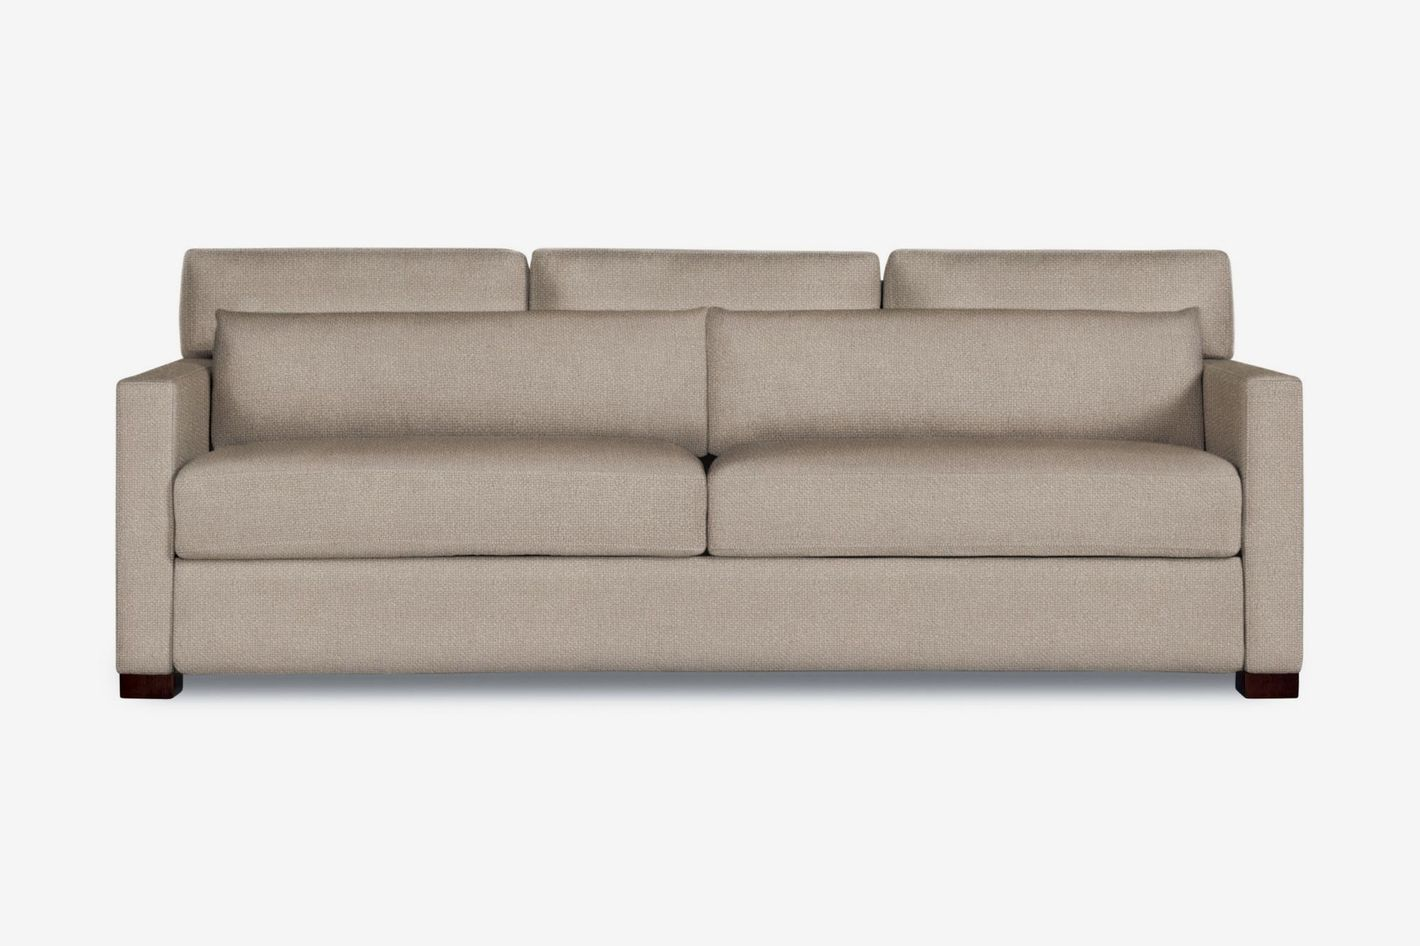 Vesper king sleeper sofa